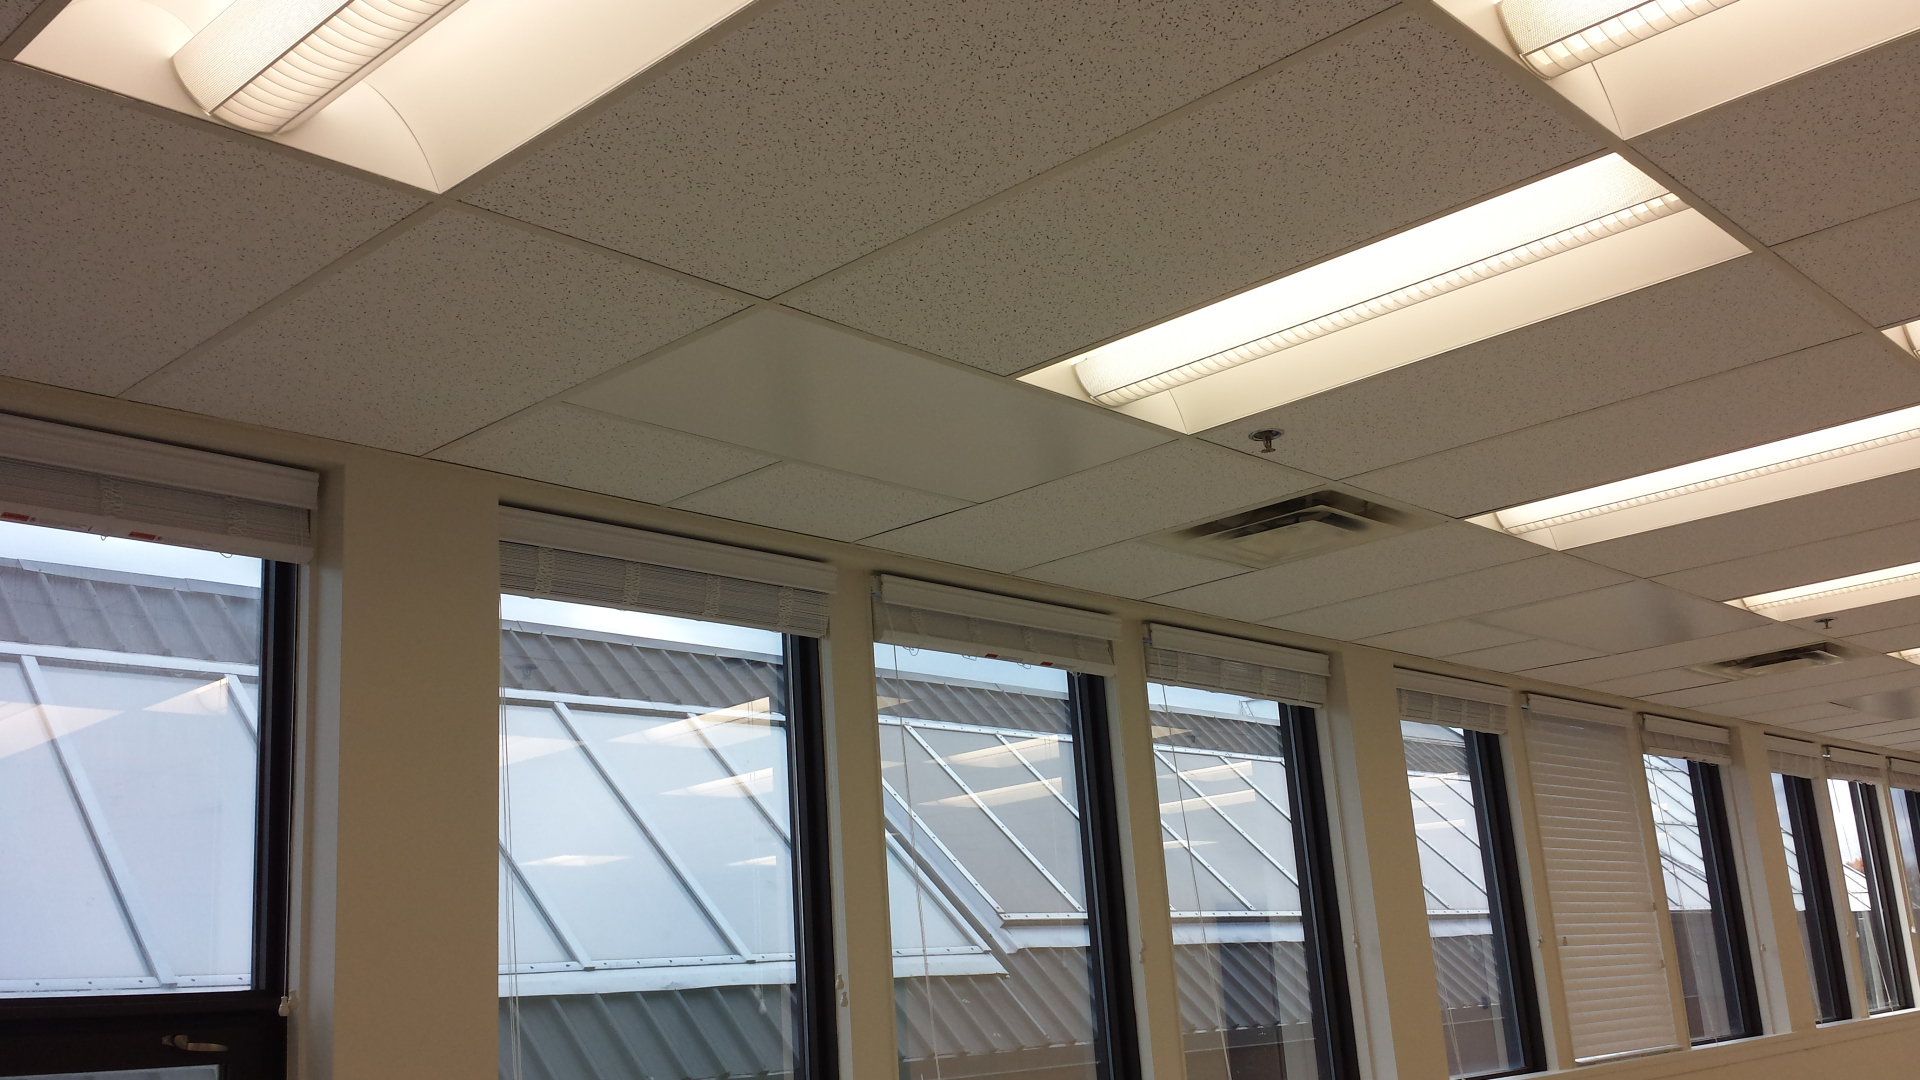 Metal Radiant Ceiling Panels (Architectural Series)